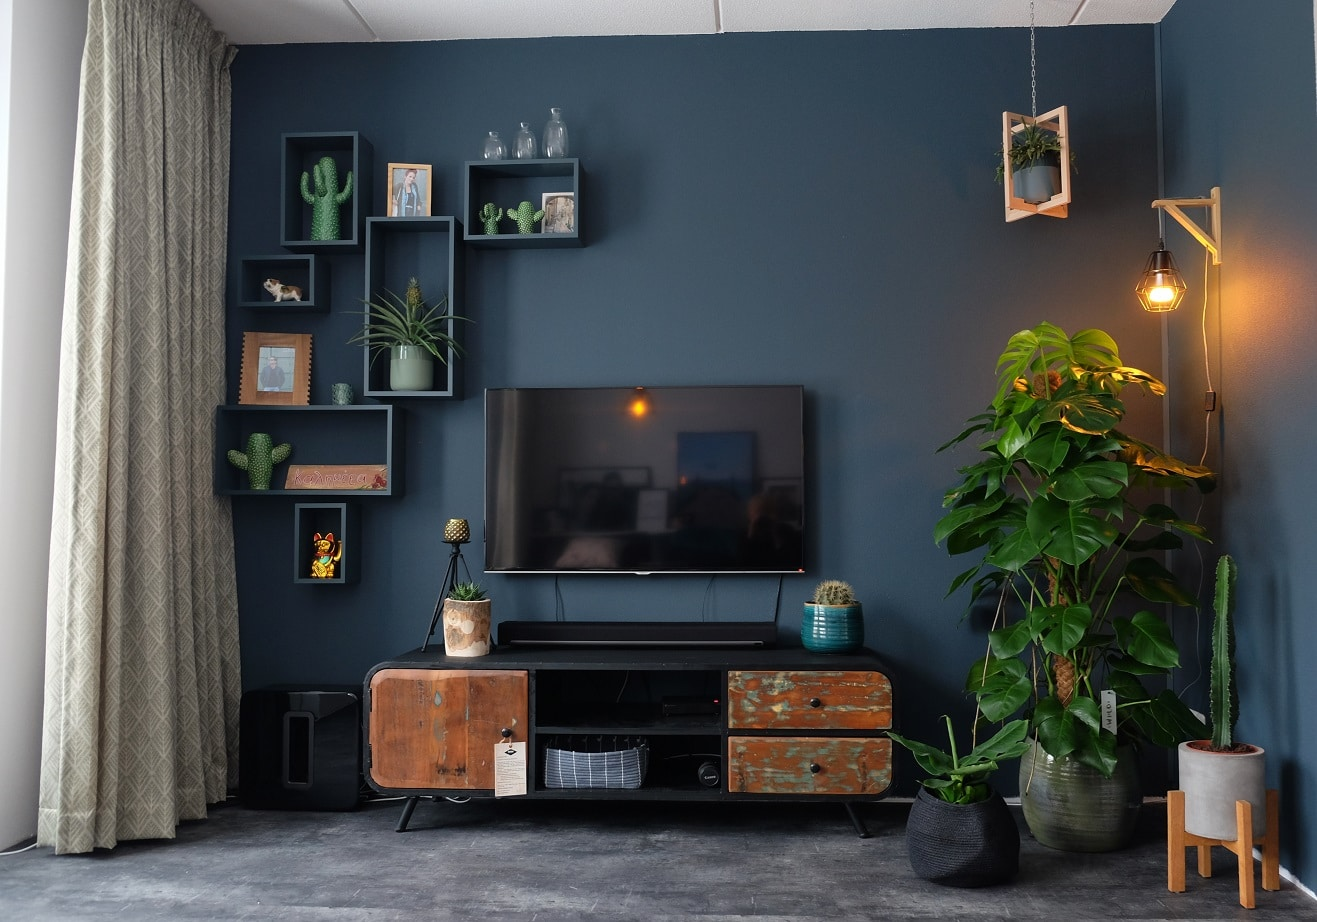 Industri le woonkamer zosammieenzo for Zweeds interieur woonkamer